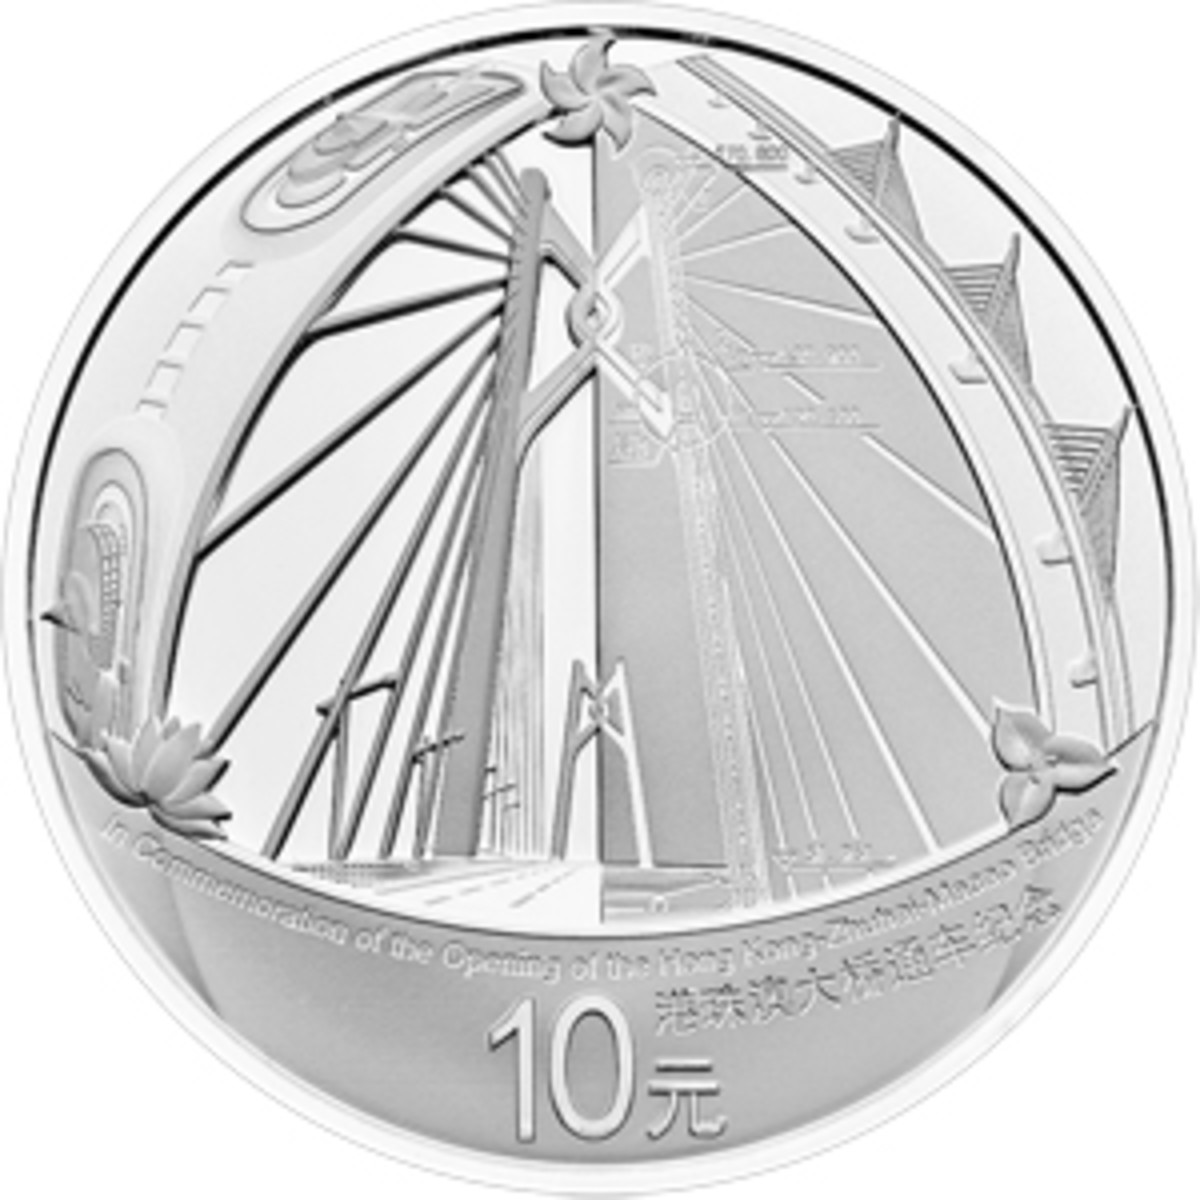 A stunning perspective view of parts of the Hong Kong–Zhuhai–Macao Bridge features on the reverse of the silver 10 yuan struck to mark the opening of world's longest sea crossing. (Image courtesy China Gold)